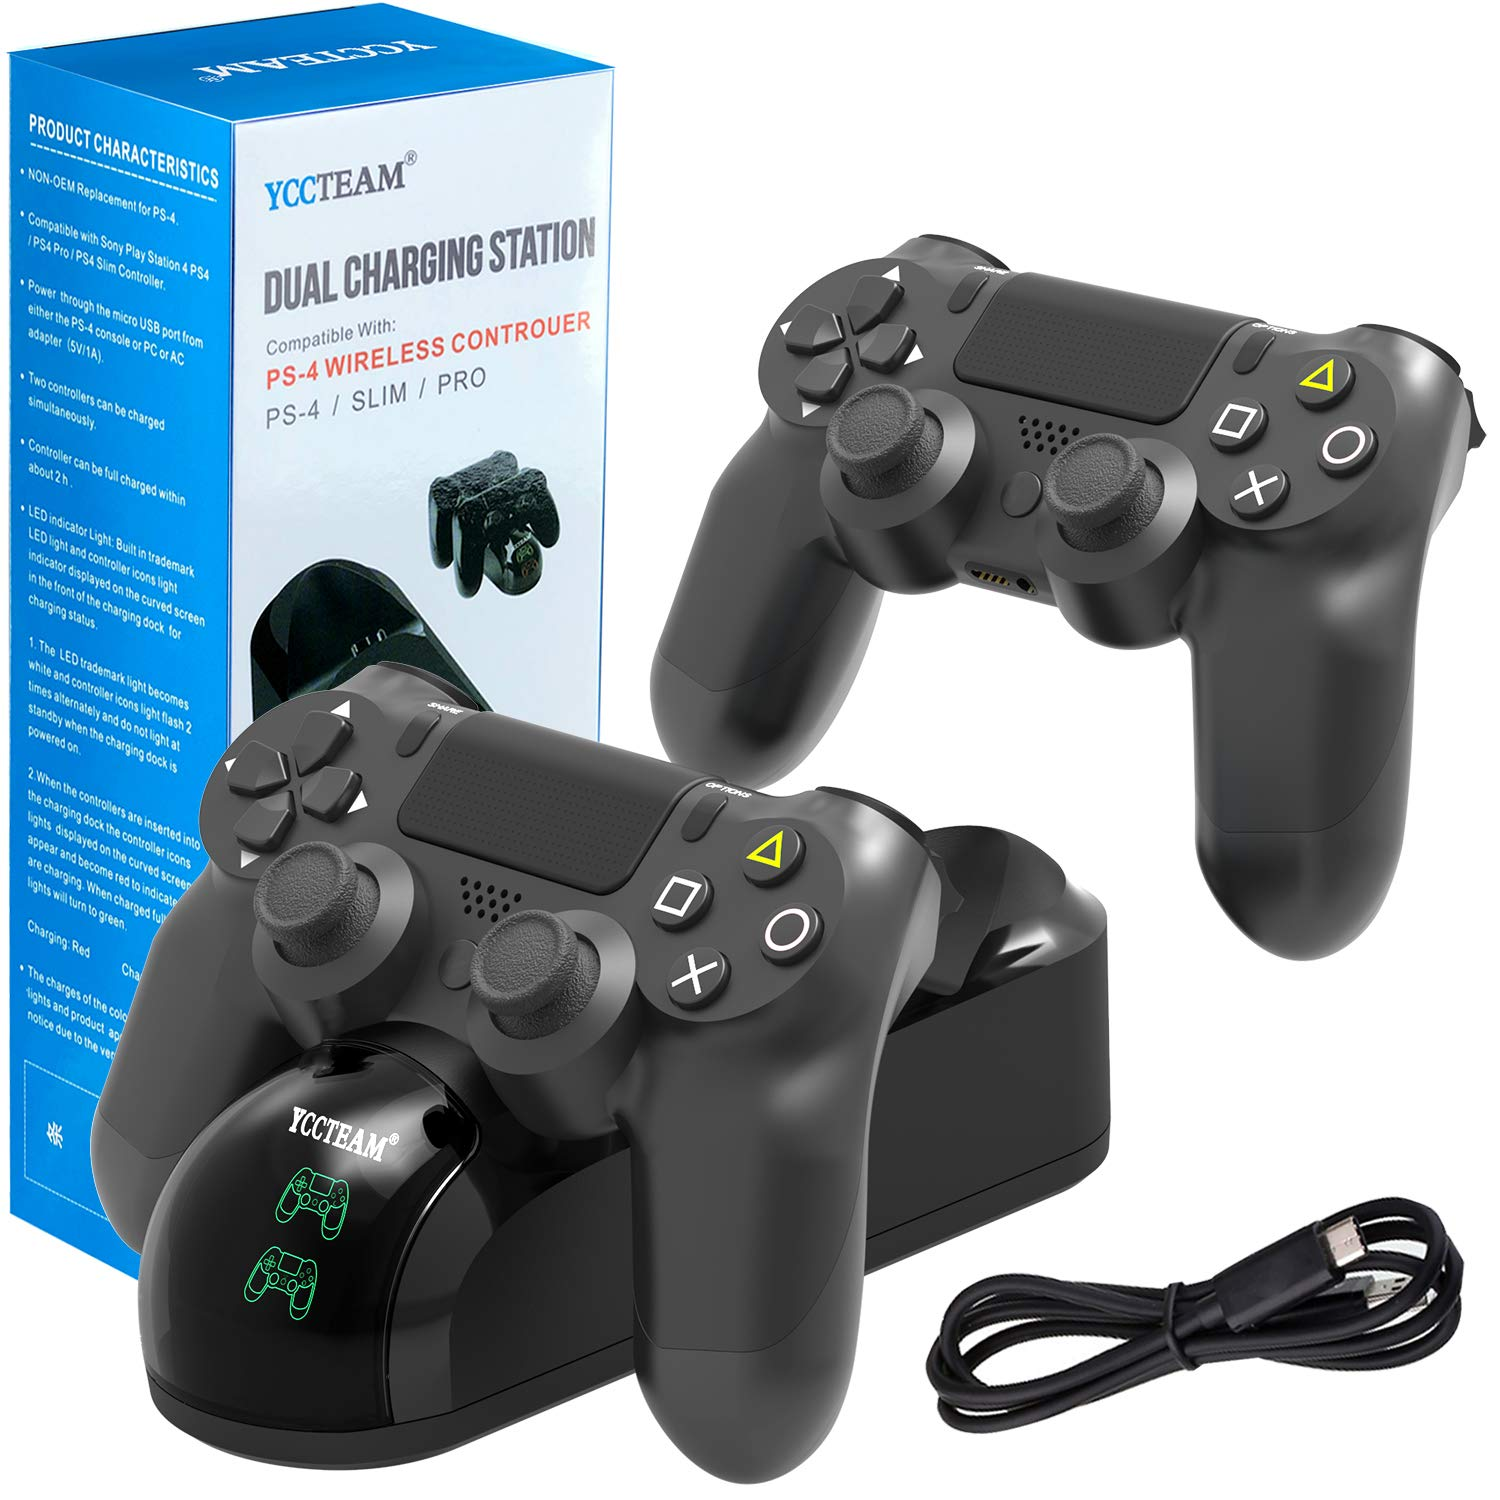 PS4 Controller Charger, DualShock 4 USB Charging Station Dock for Sony Playstation 4/PS4 Slim/PS4 Pro Controller